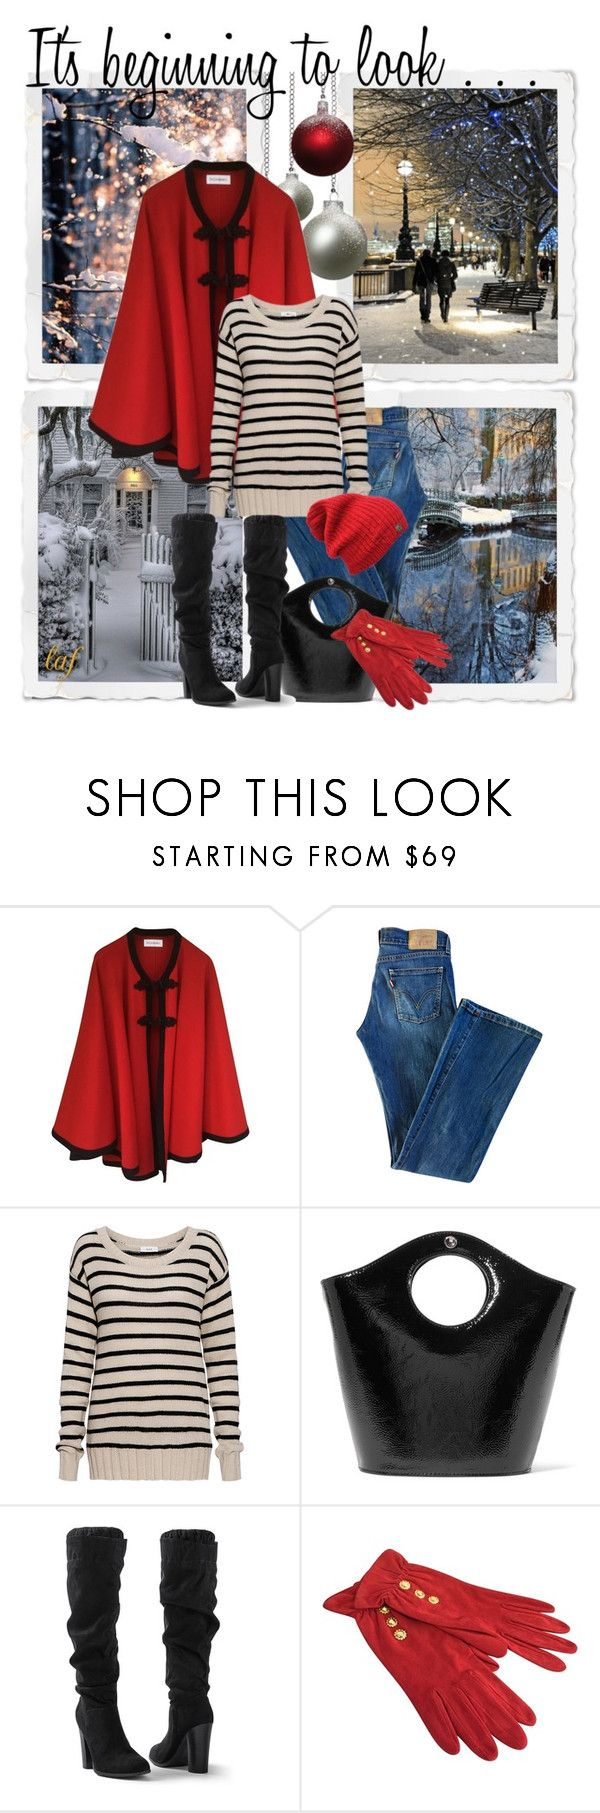 """It's Beginning To Look"" by lois-boyce-flack ❤ liked on Polyvore featuring Yves Saint Laurent, Levi's, A.L.C., Elizabeth and James, Venus and Emanuel Ungaro"